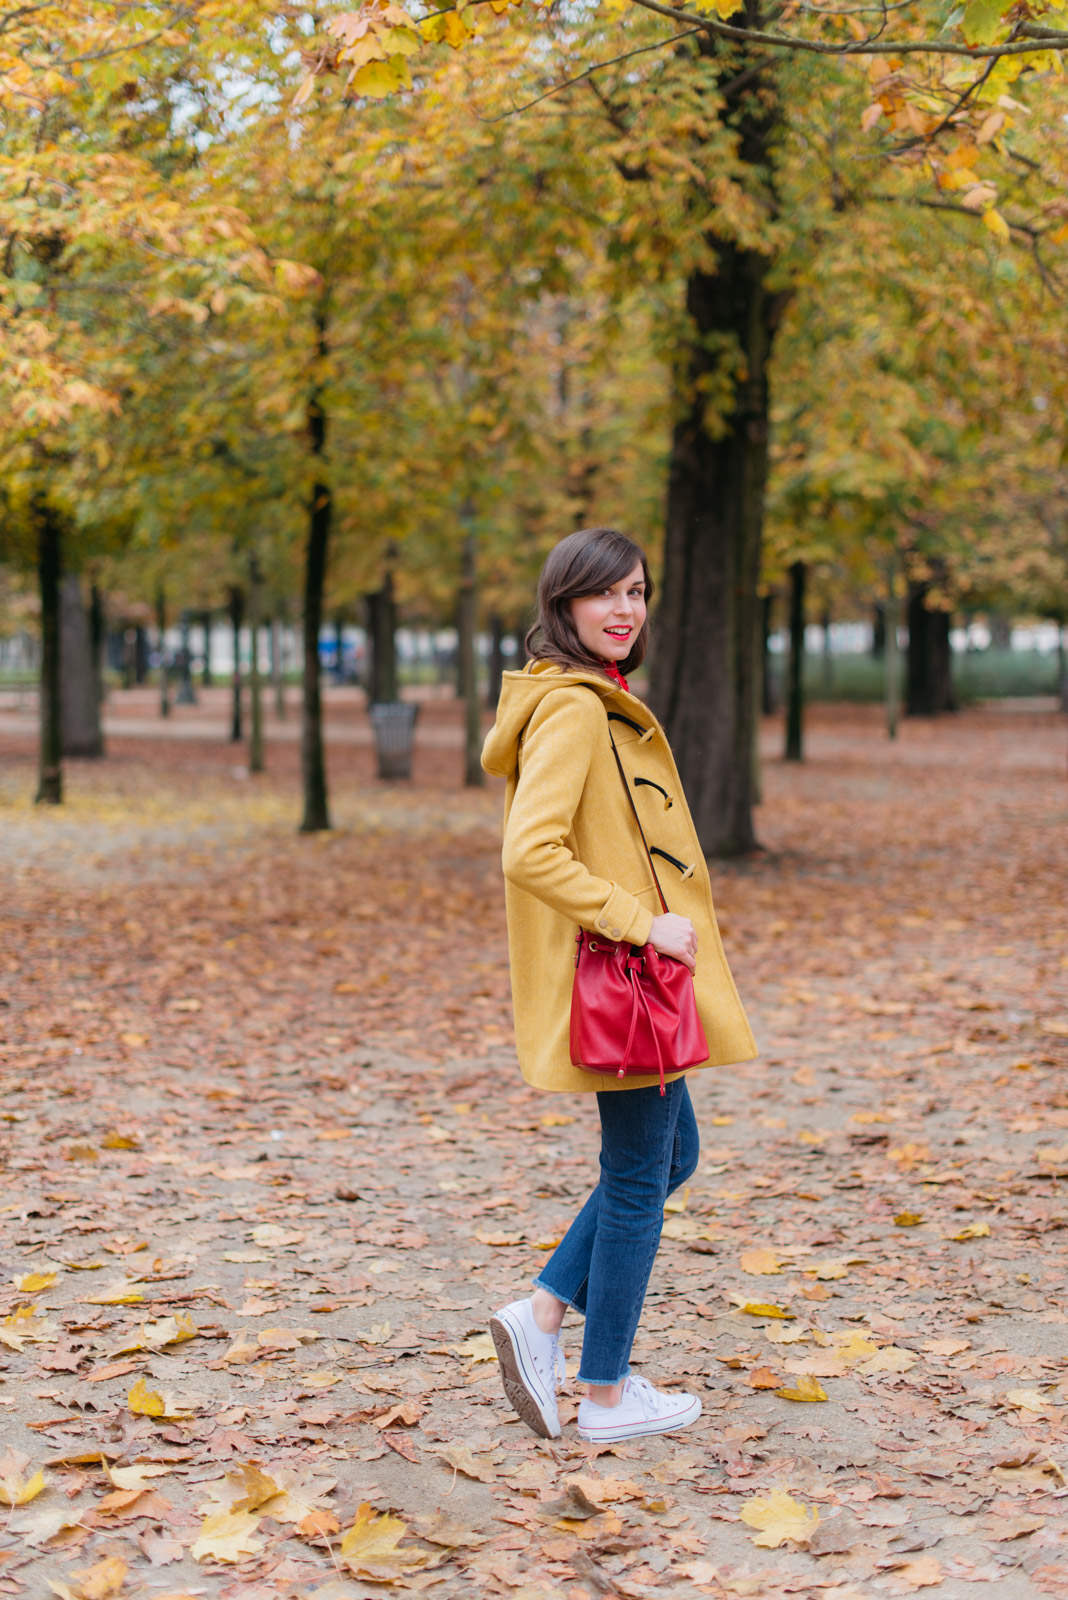 Blog-Mode-And-The-City-Lokks-Fille-de-Automne-7